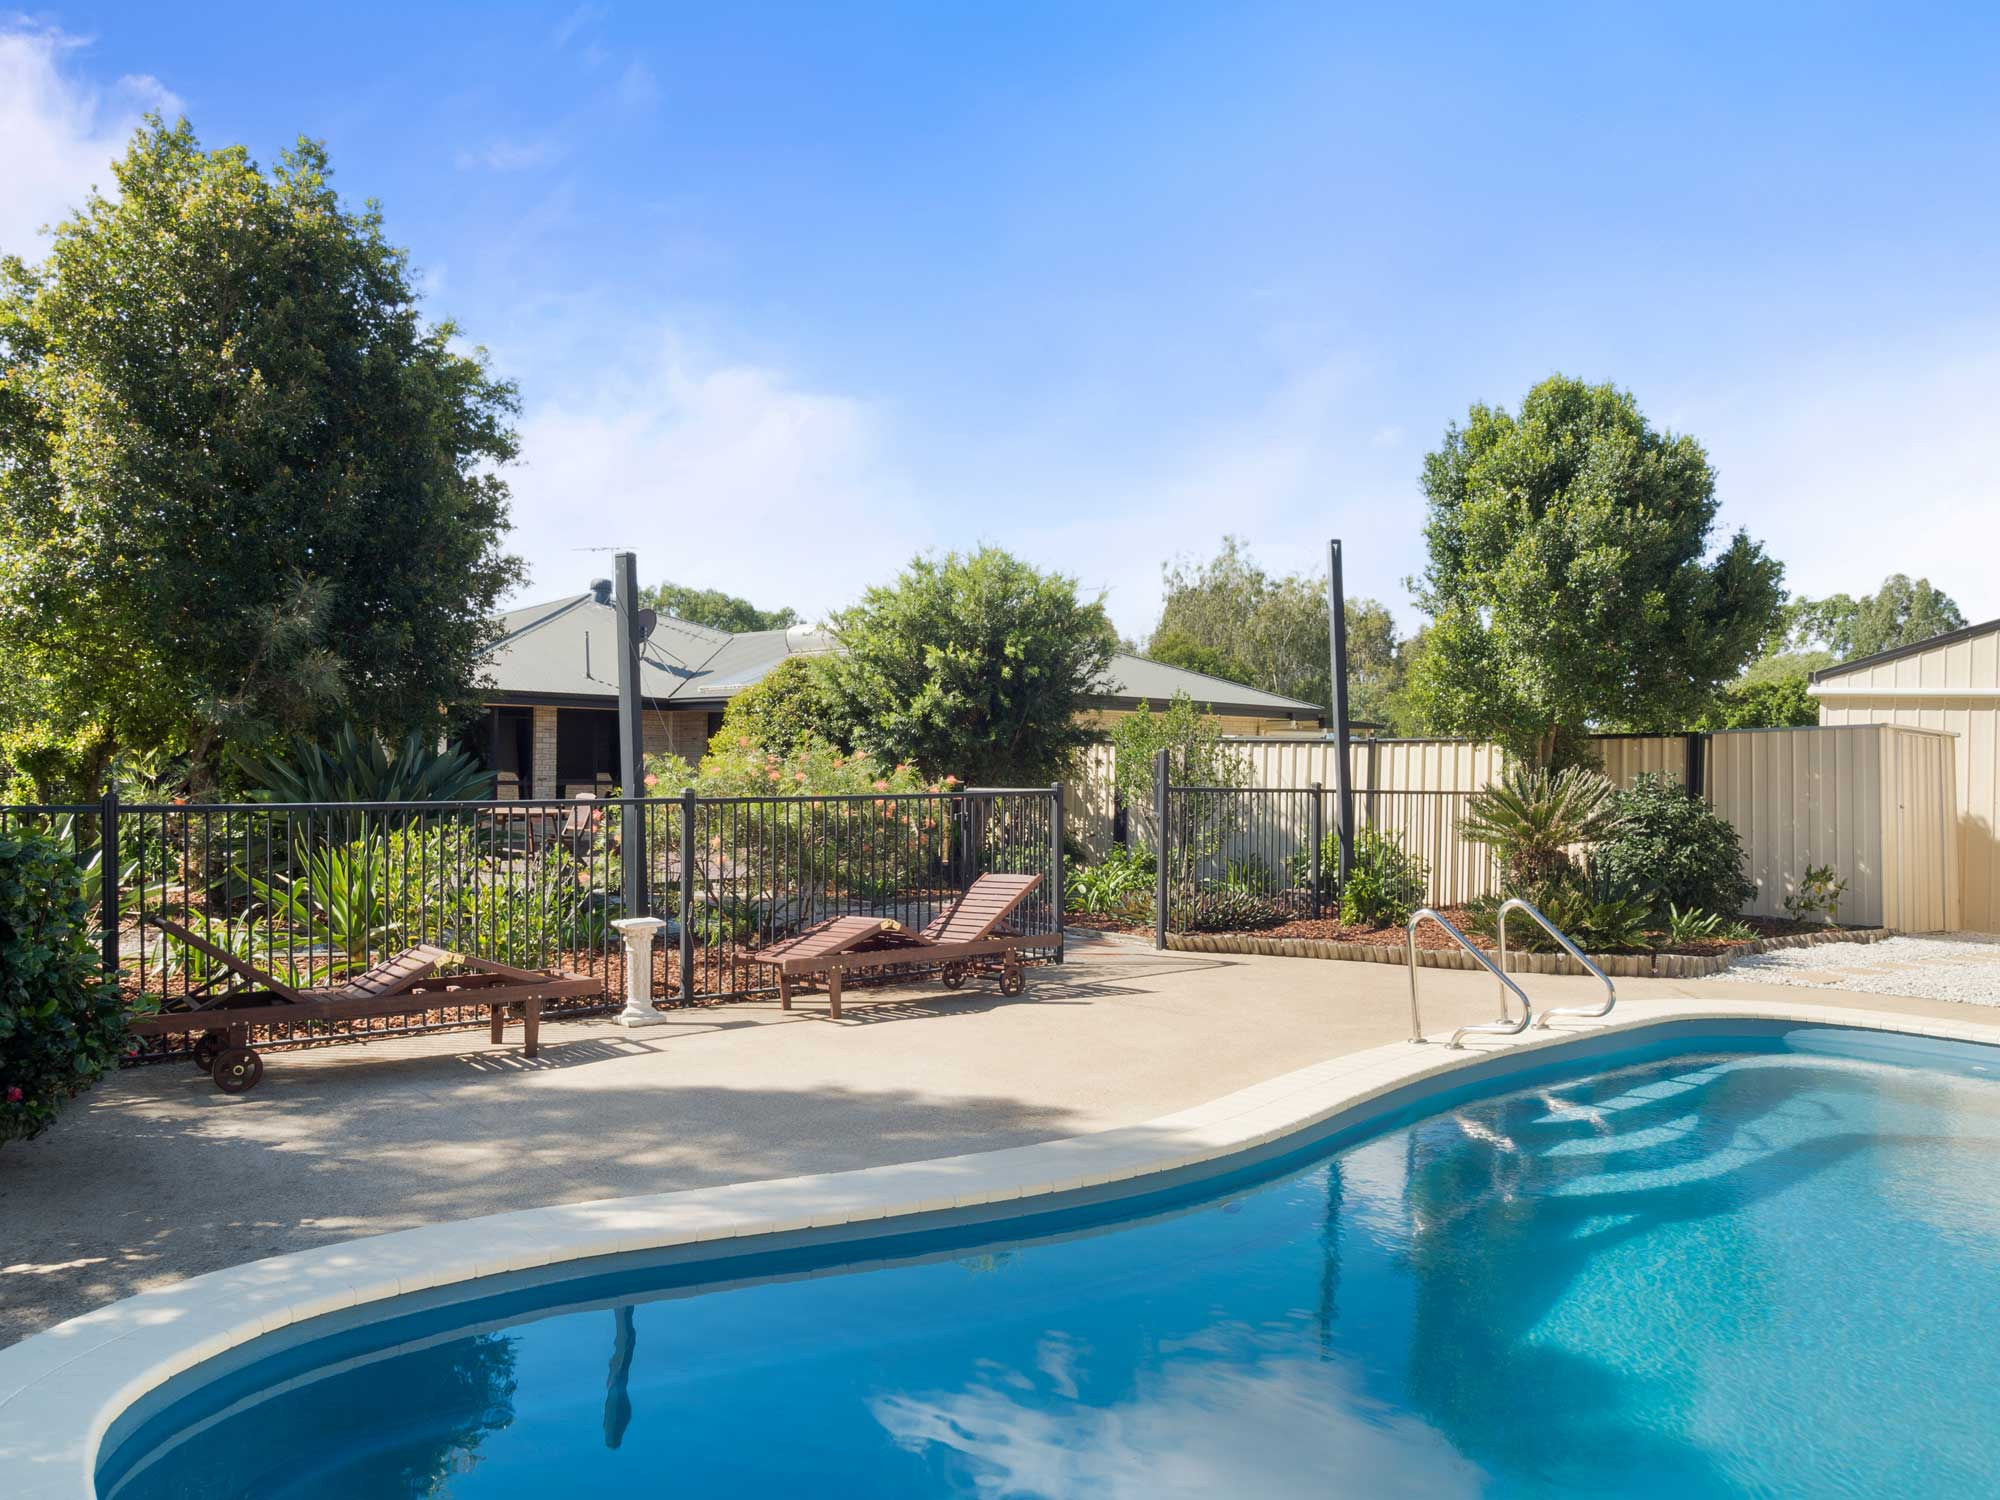 The swimming pool at 33 Shergar Court Jimboomba